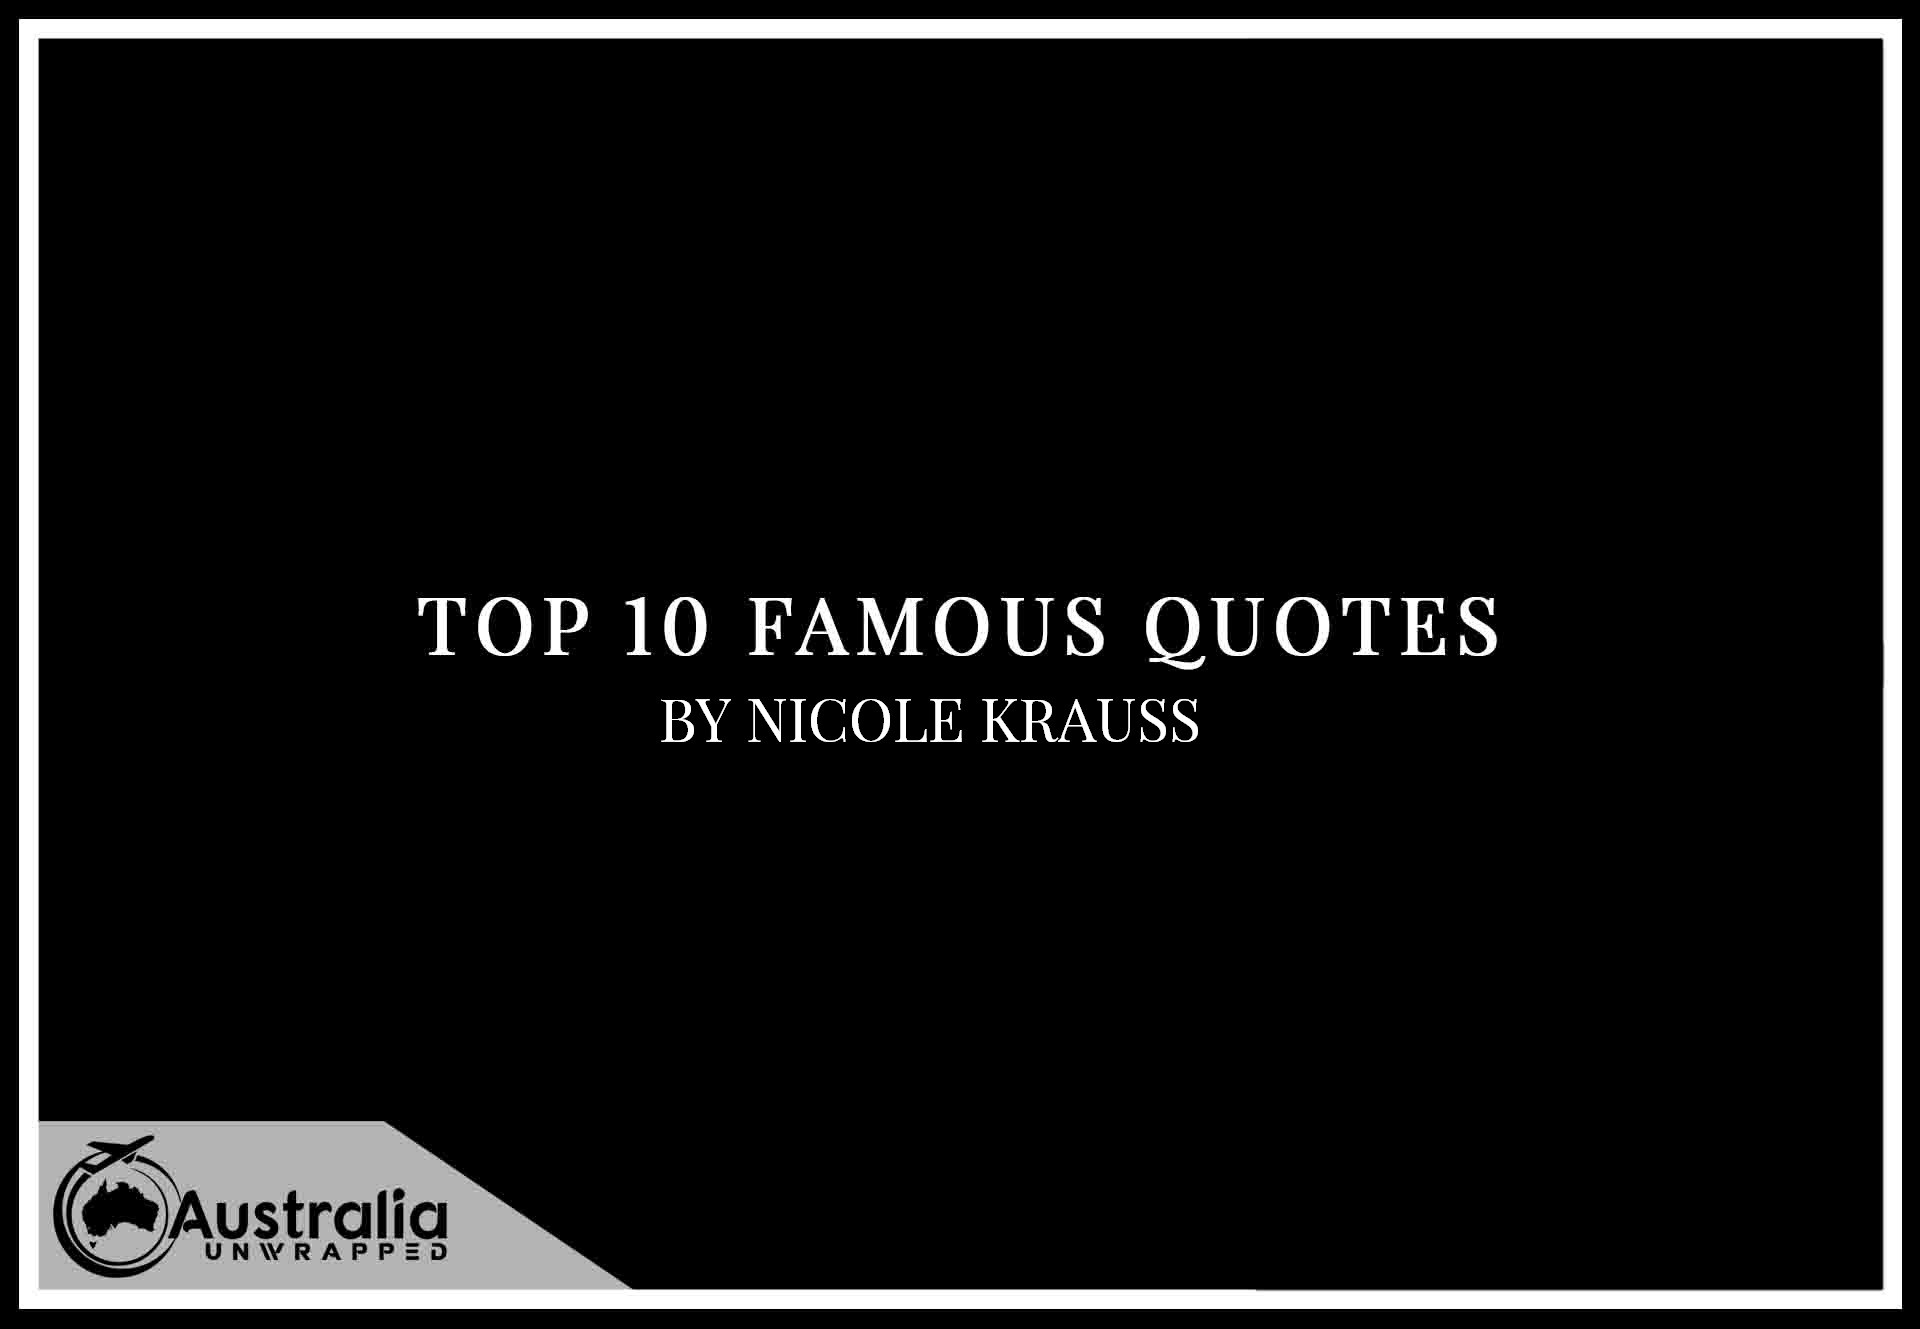 Top 10 Famous Quotes by Author Nicole Krauss